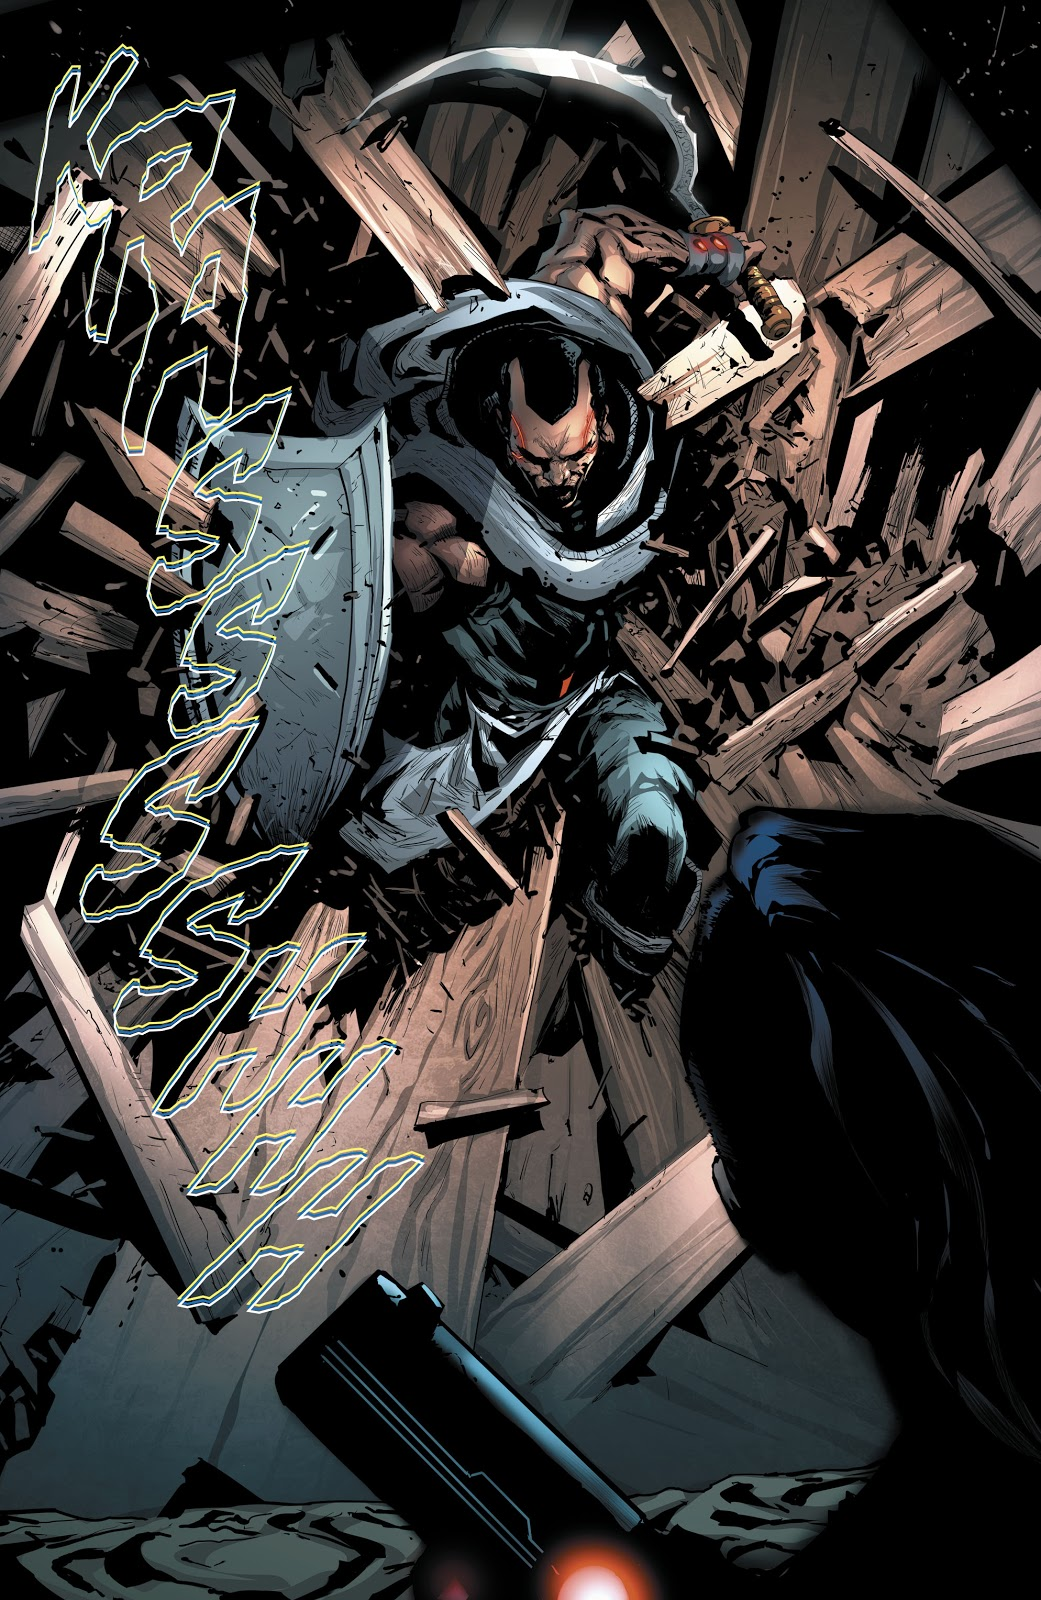 Ishmael (Batman And The Outsiders Vol. 3 #2)